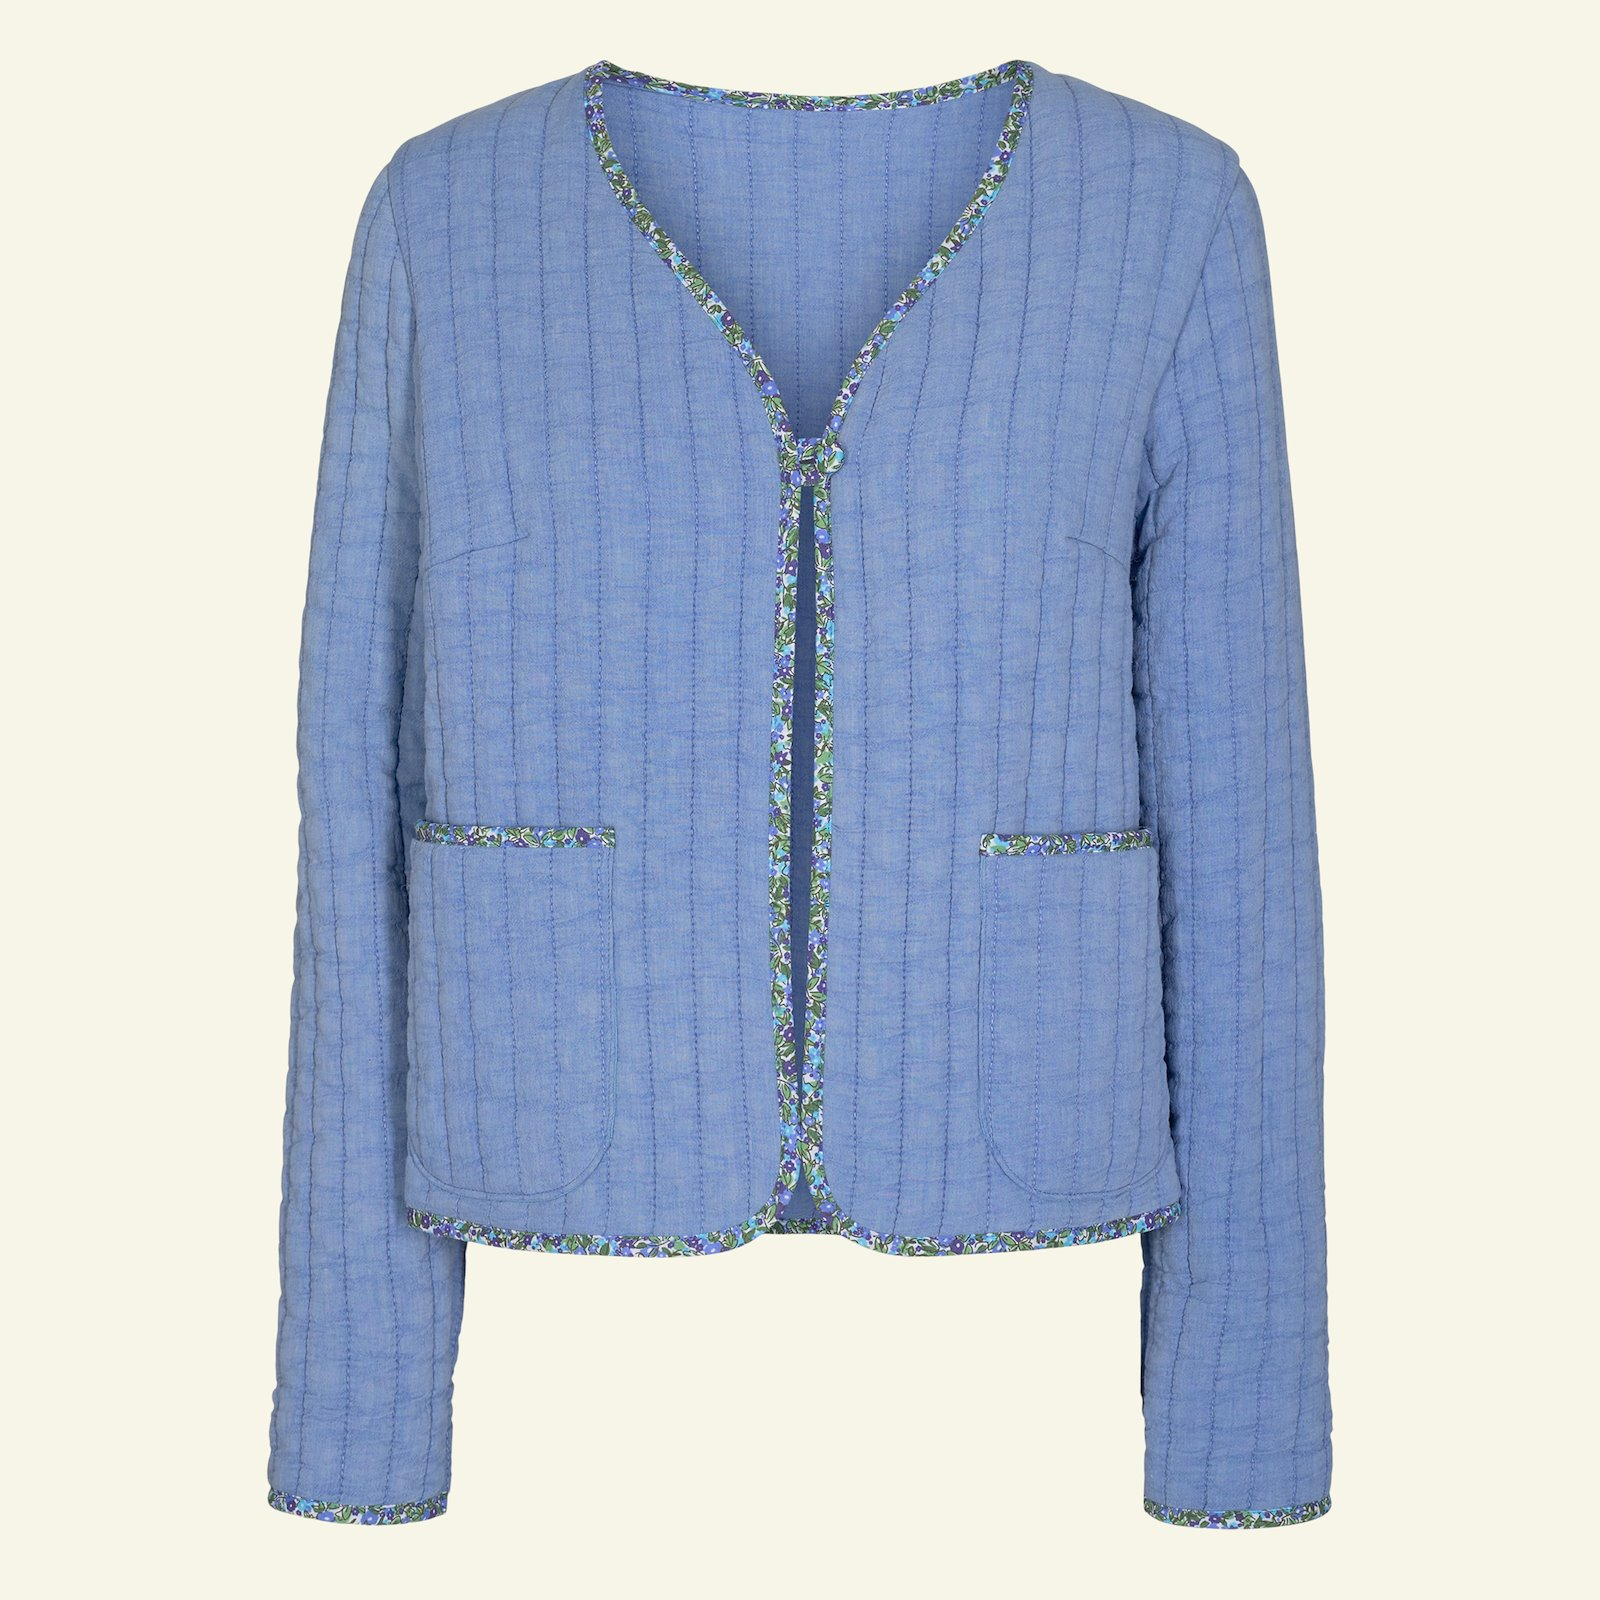 Quilted jacket and waistcoat, 42/14 p24047_920229_64110_43507_sskit